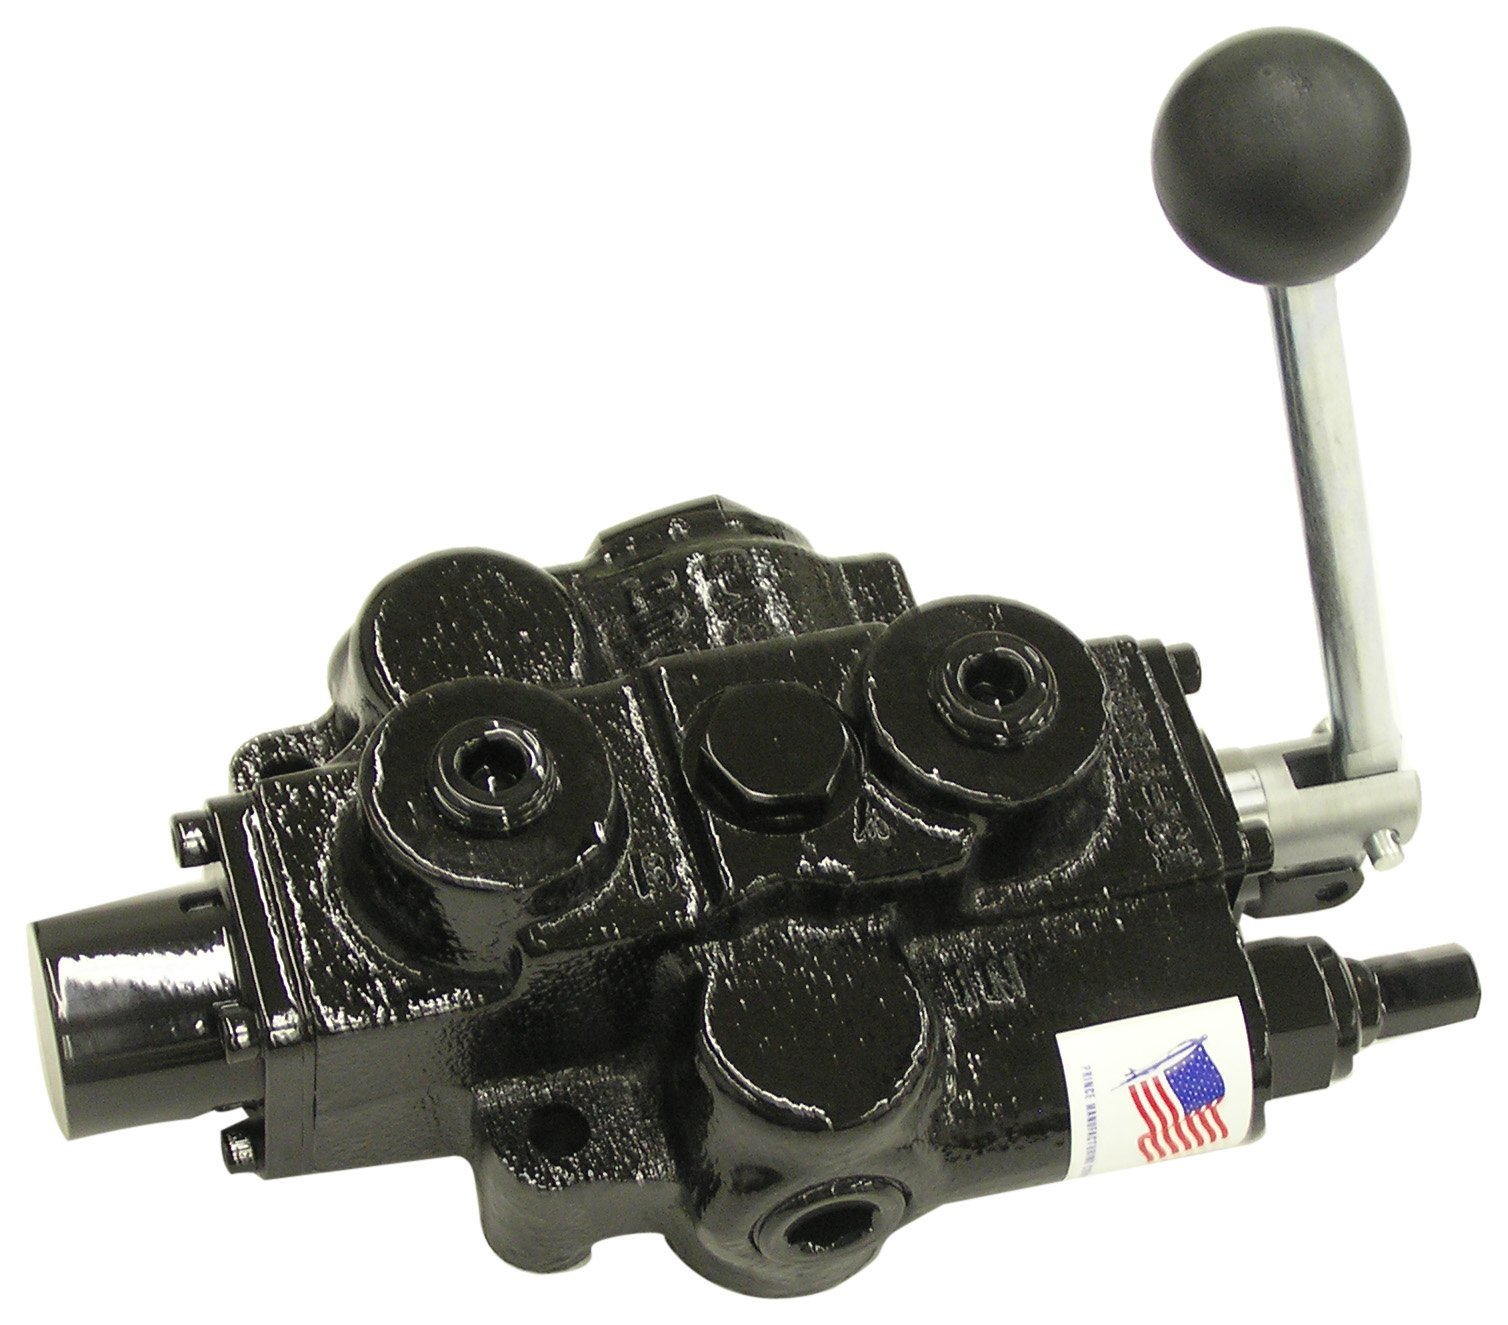 Prince RD512CB5A4B1 Directional Control Valve, Single Spool, 4 Ways, 3 Positions, Tandem Center, 3 Position Detent (no centering spring), Cast Iron, 3000 psi, Lever Handle, 30 gpm, In/Out: 3/4'' NPTF, Work 1/2'' NPTF